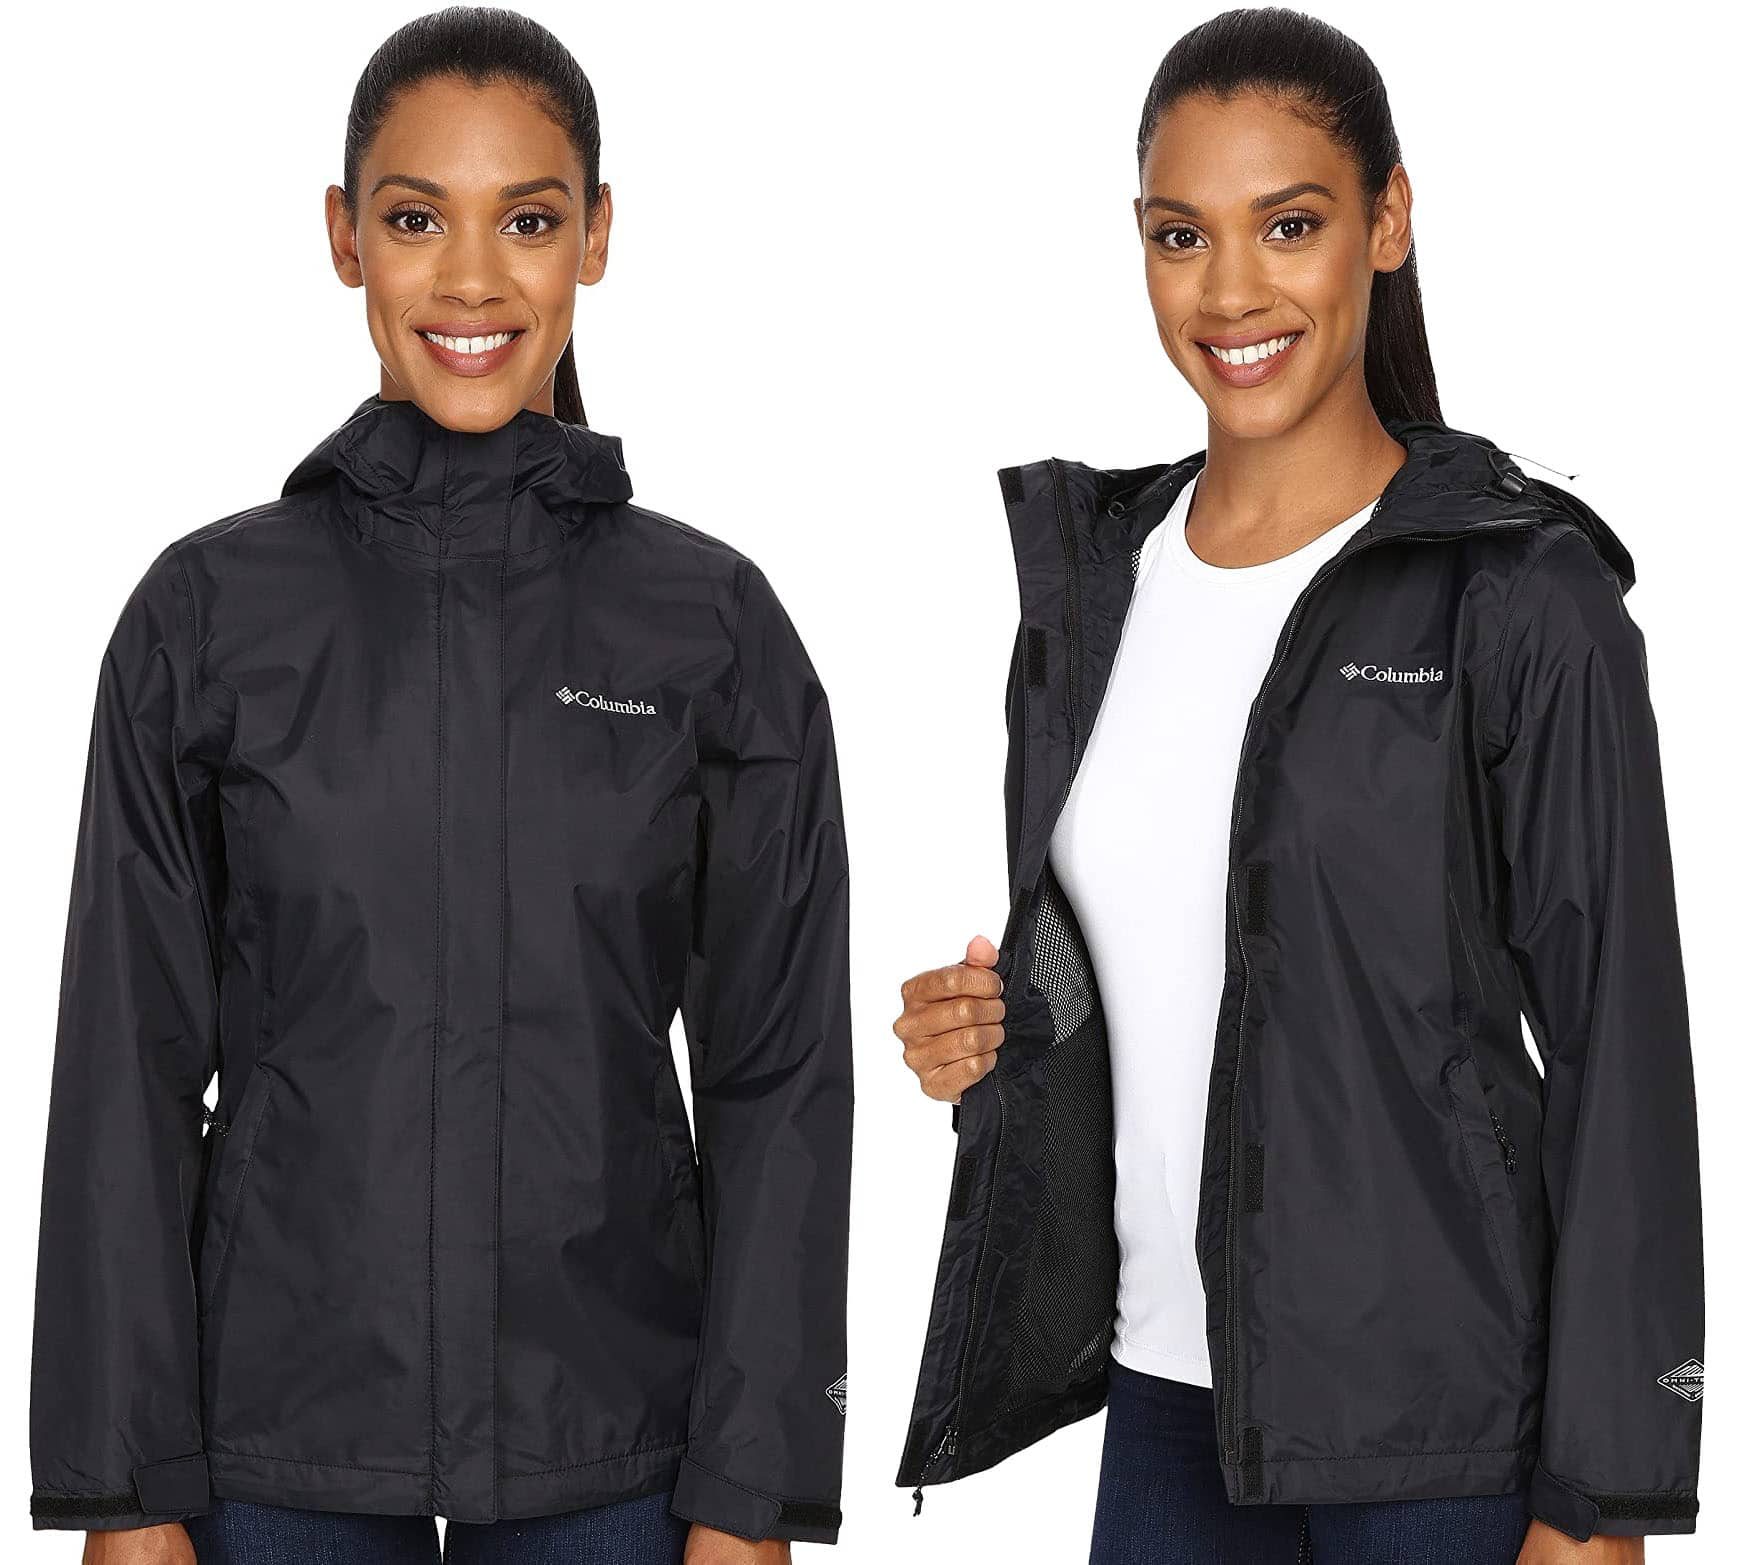 Columbia's ultralightweight Arcadia II rain jacket features a seam-sealed construction with soft mesh lining